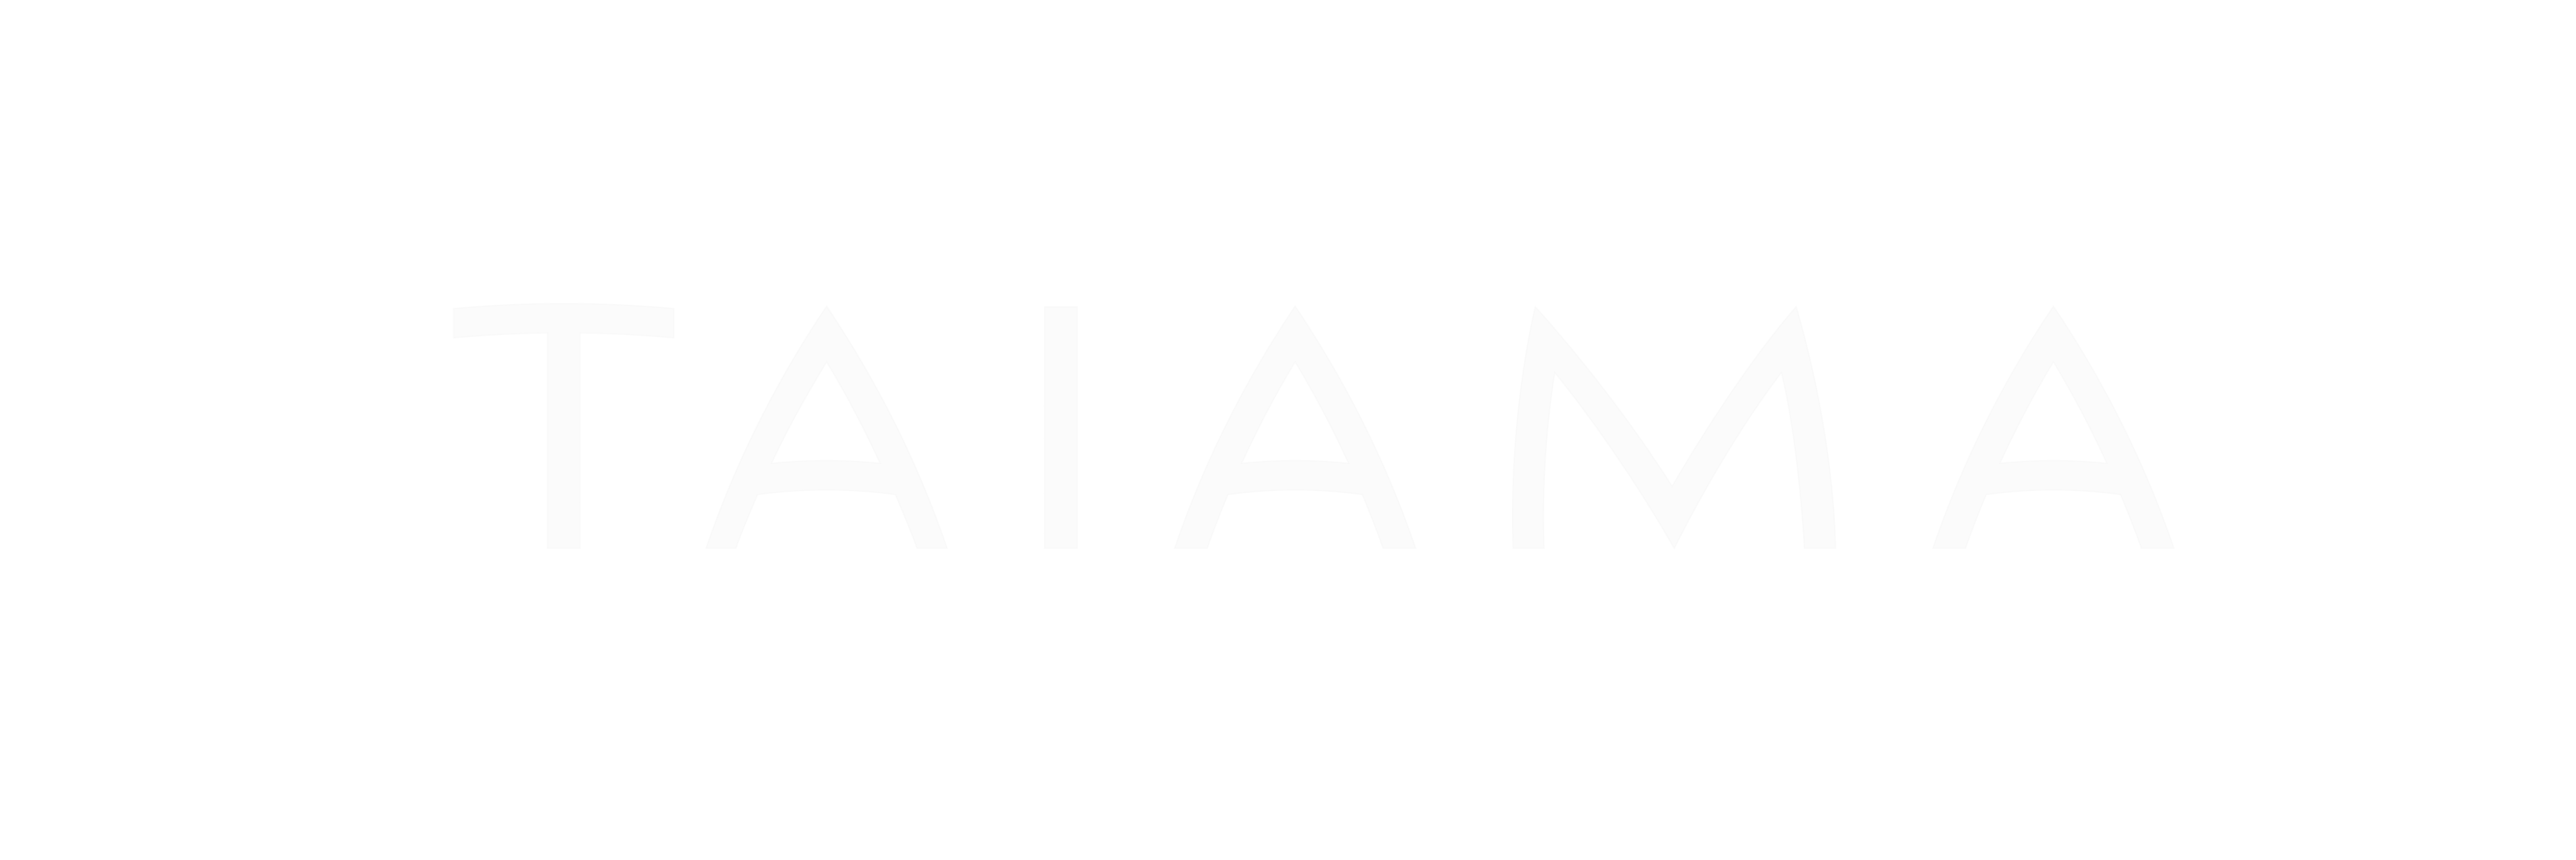 Taiama: Visual Identity